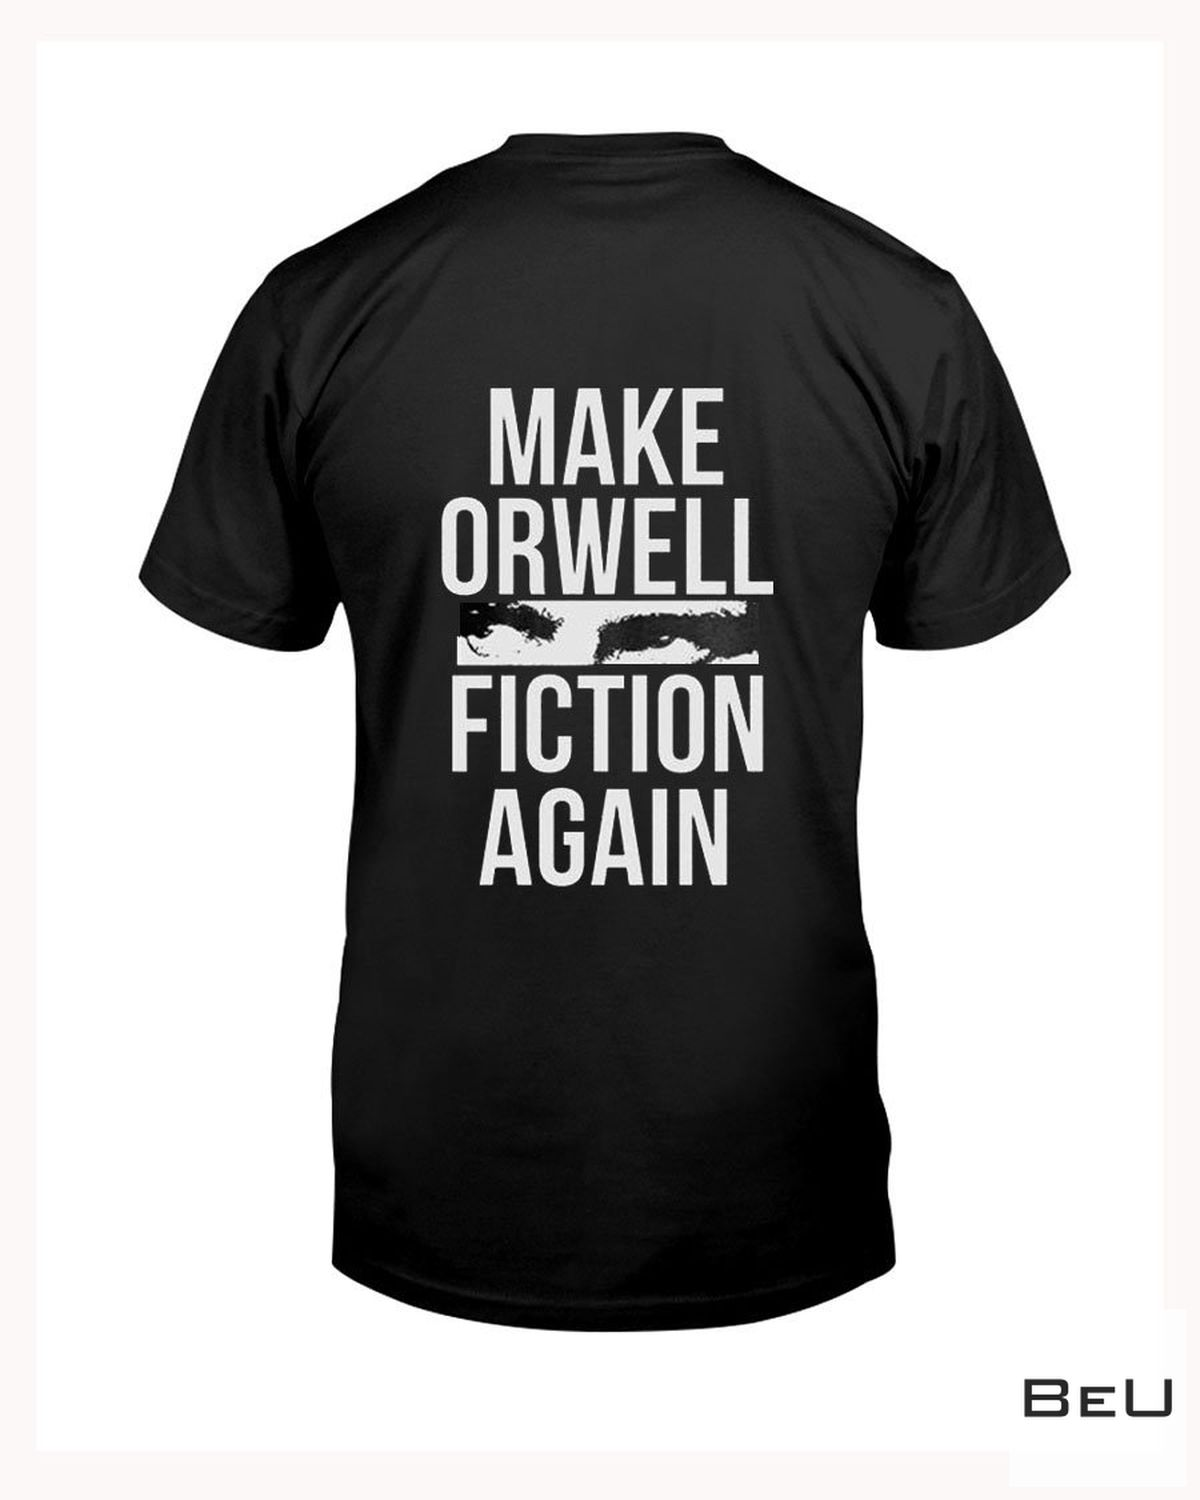 Official Make Orwell Fiction Again Shirt, hoodie